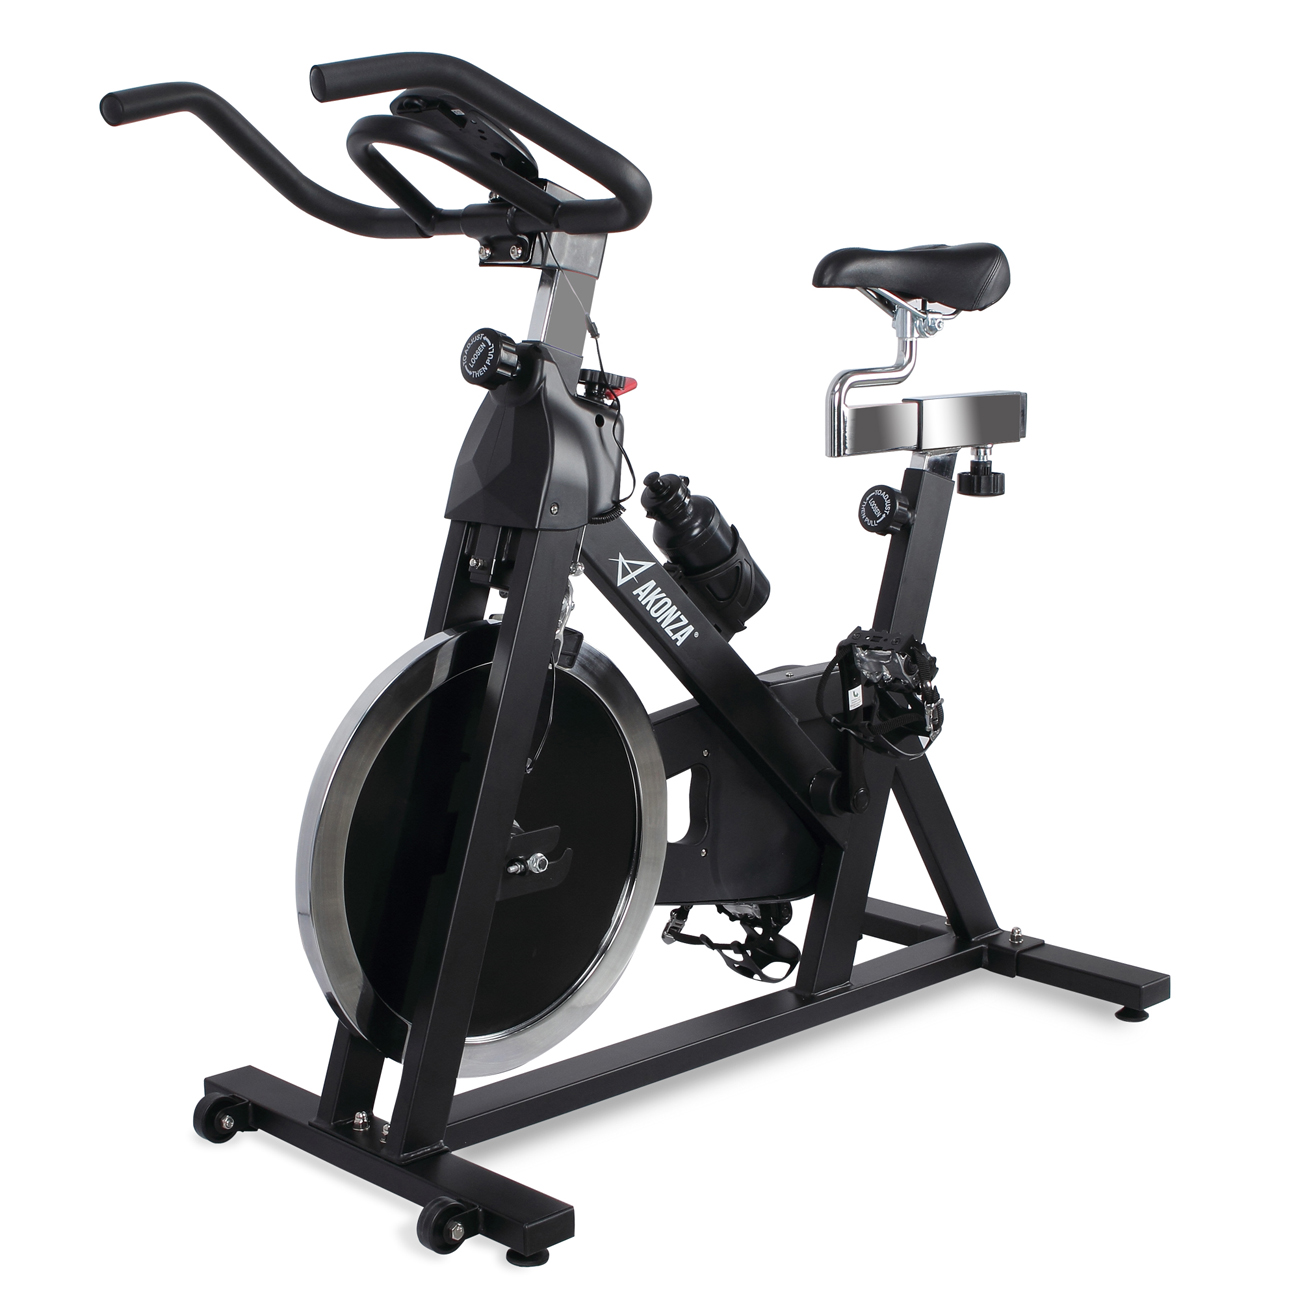 AKONZA Exercise Bike Health Fitness Indoor Cycling Bicycle Cardio Workout w/ 40lb Flywheel & LCD Display